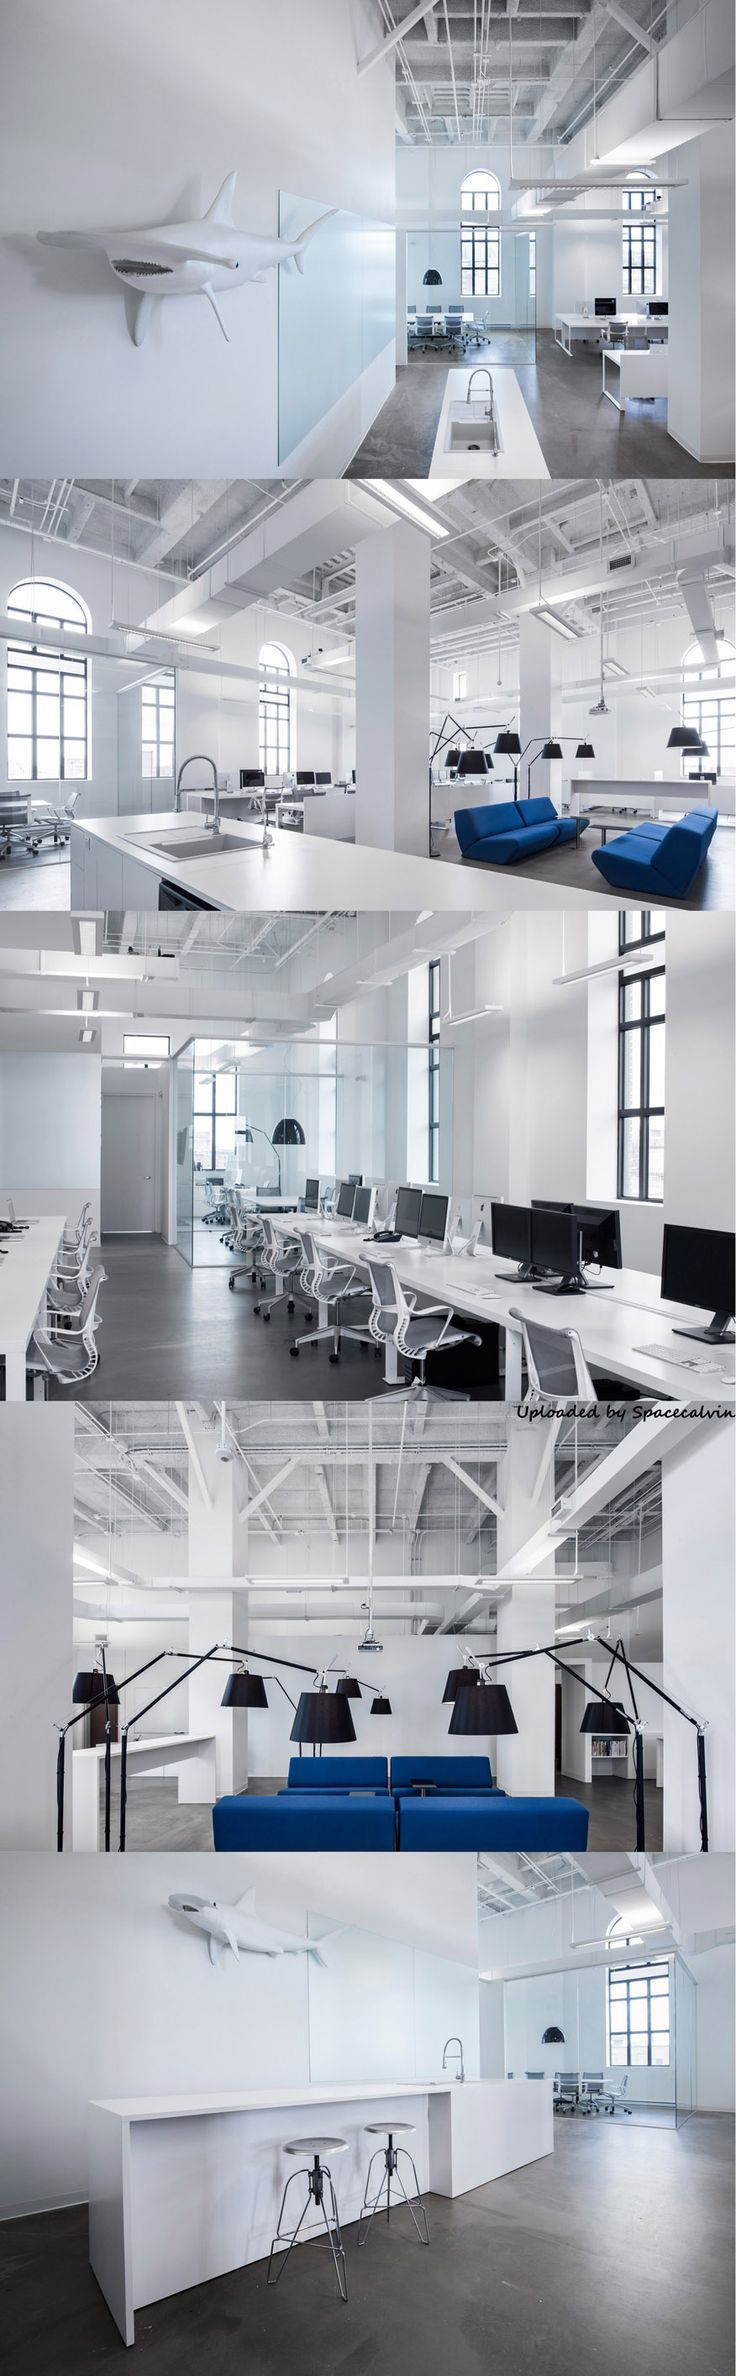 best Mi rincon images on Pinterest Office designs Rincon and